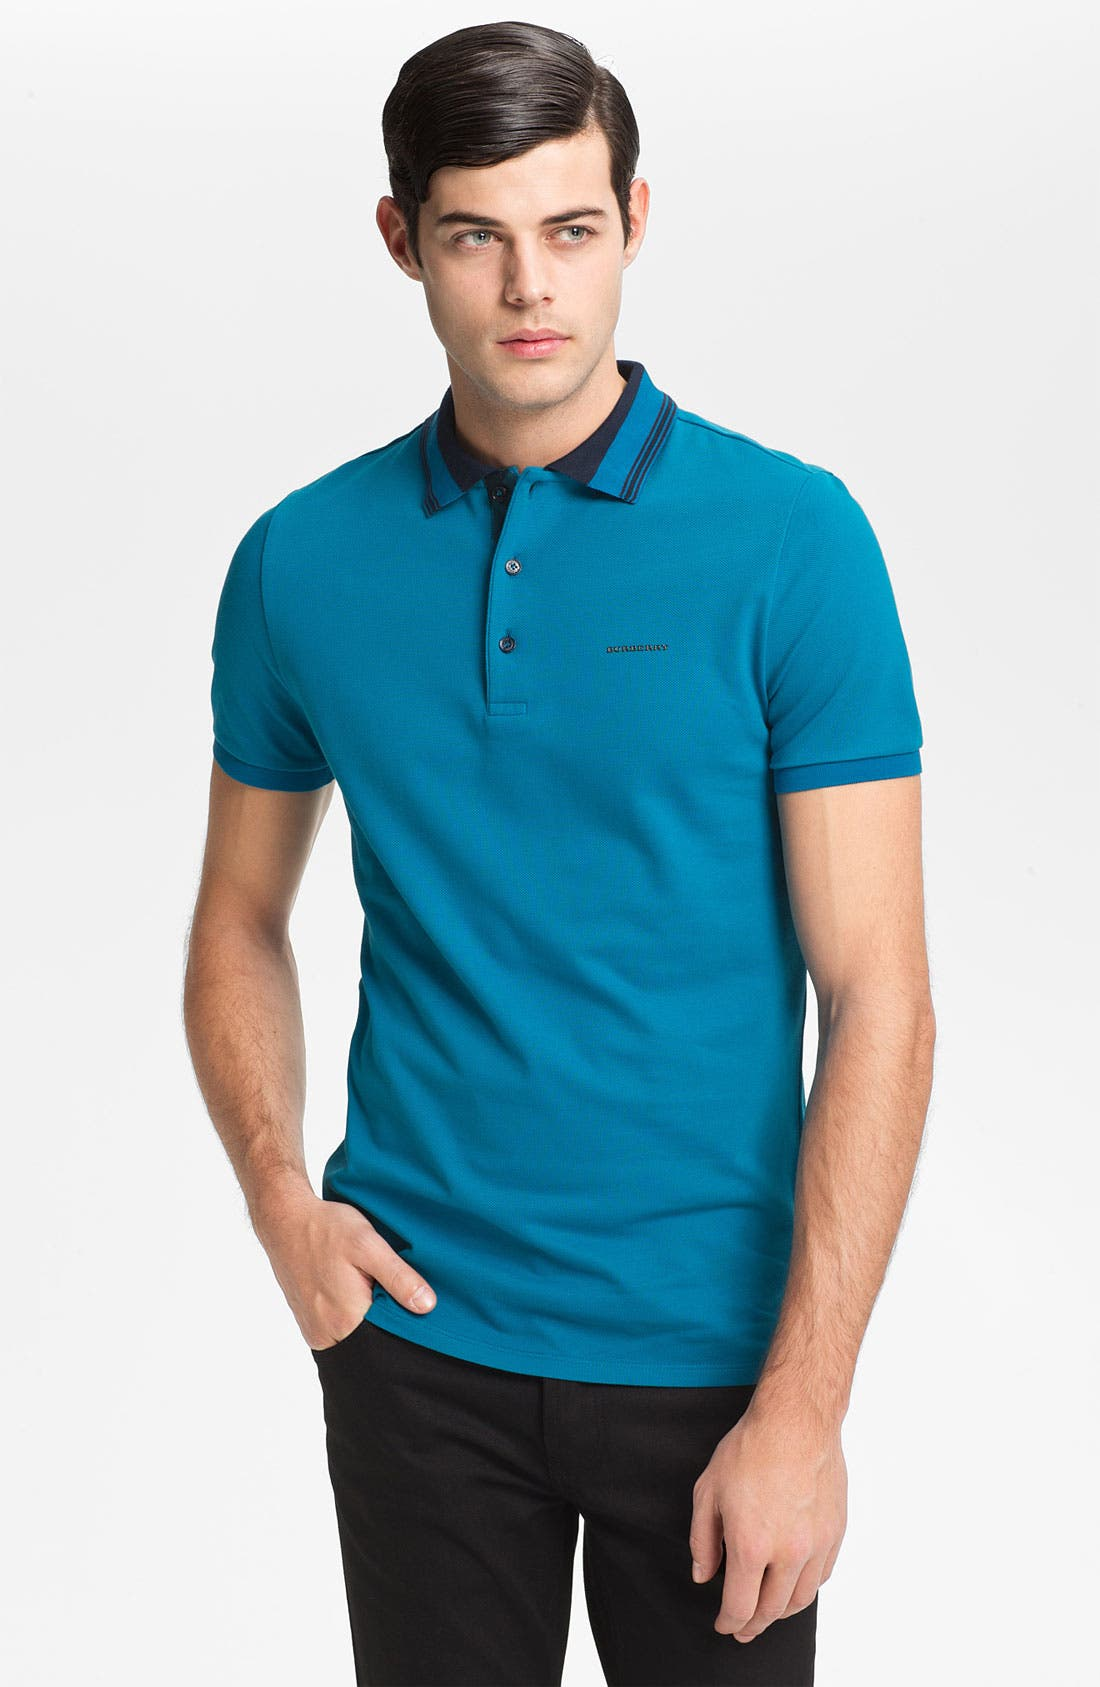 Alternate Image 1 Selected - Burberry London Tipped Polo